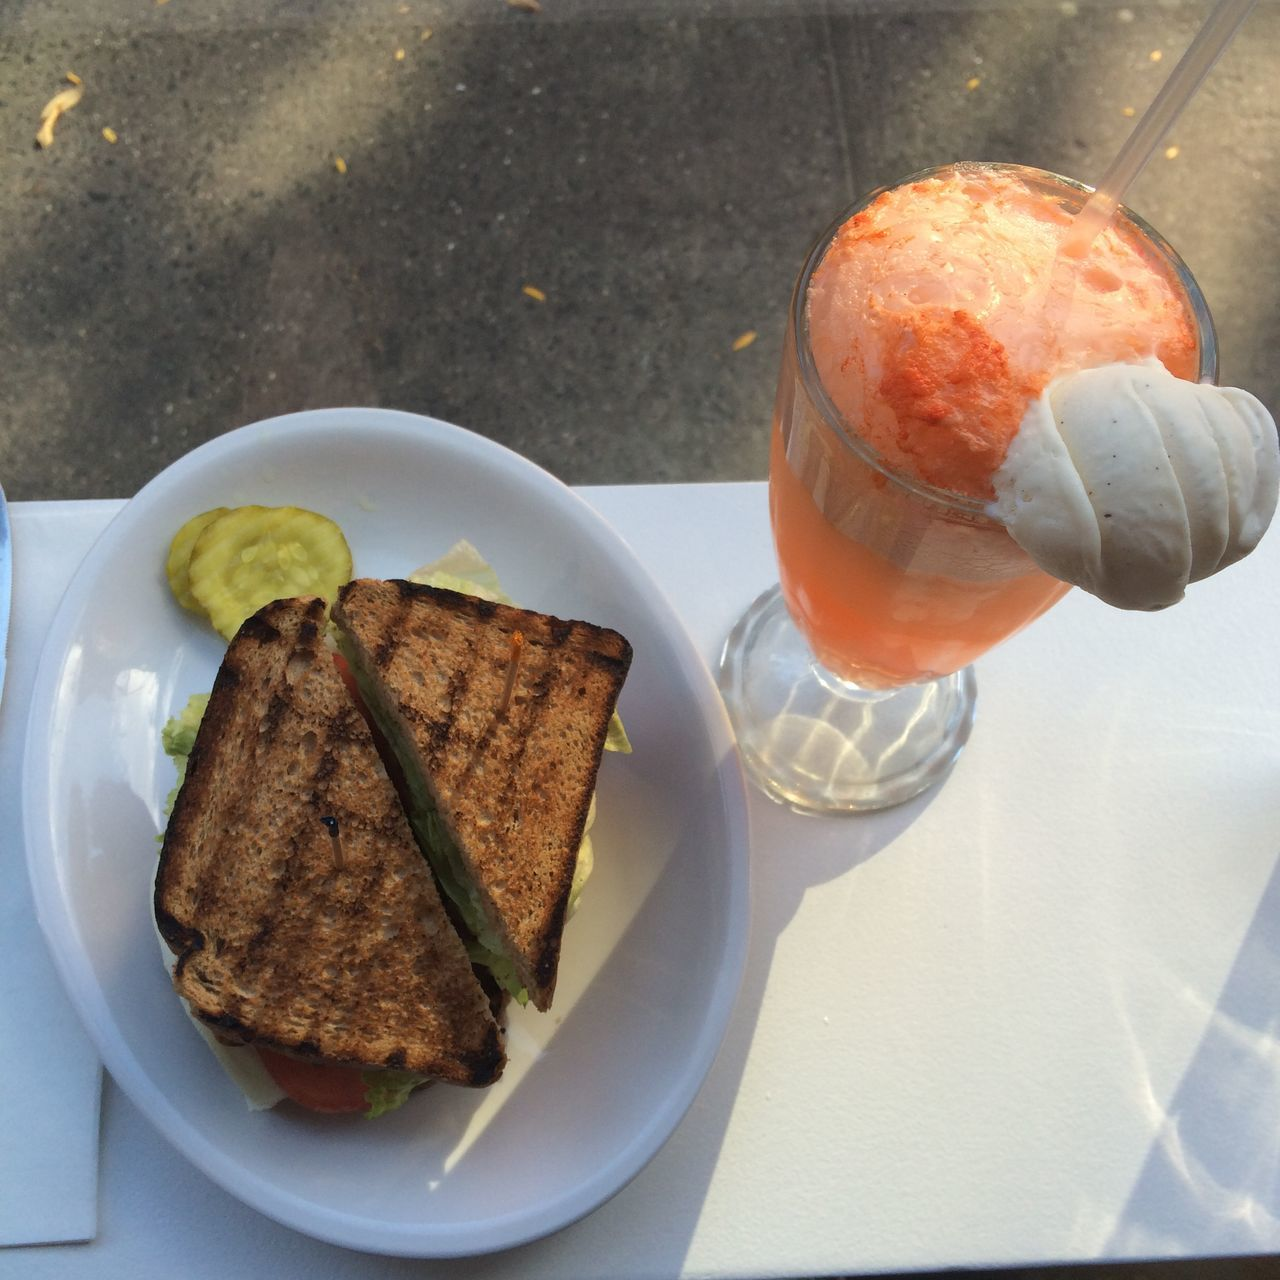 Toasted Bread With Carrot Juice